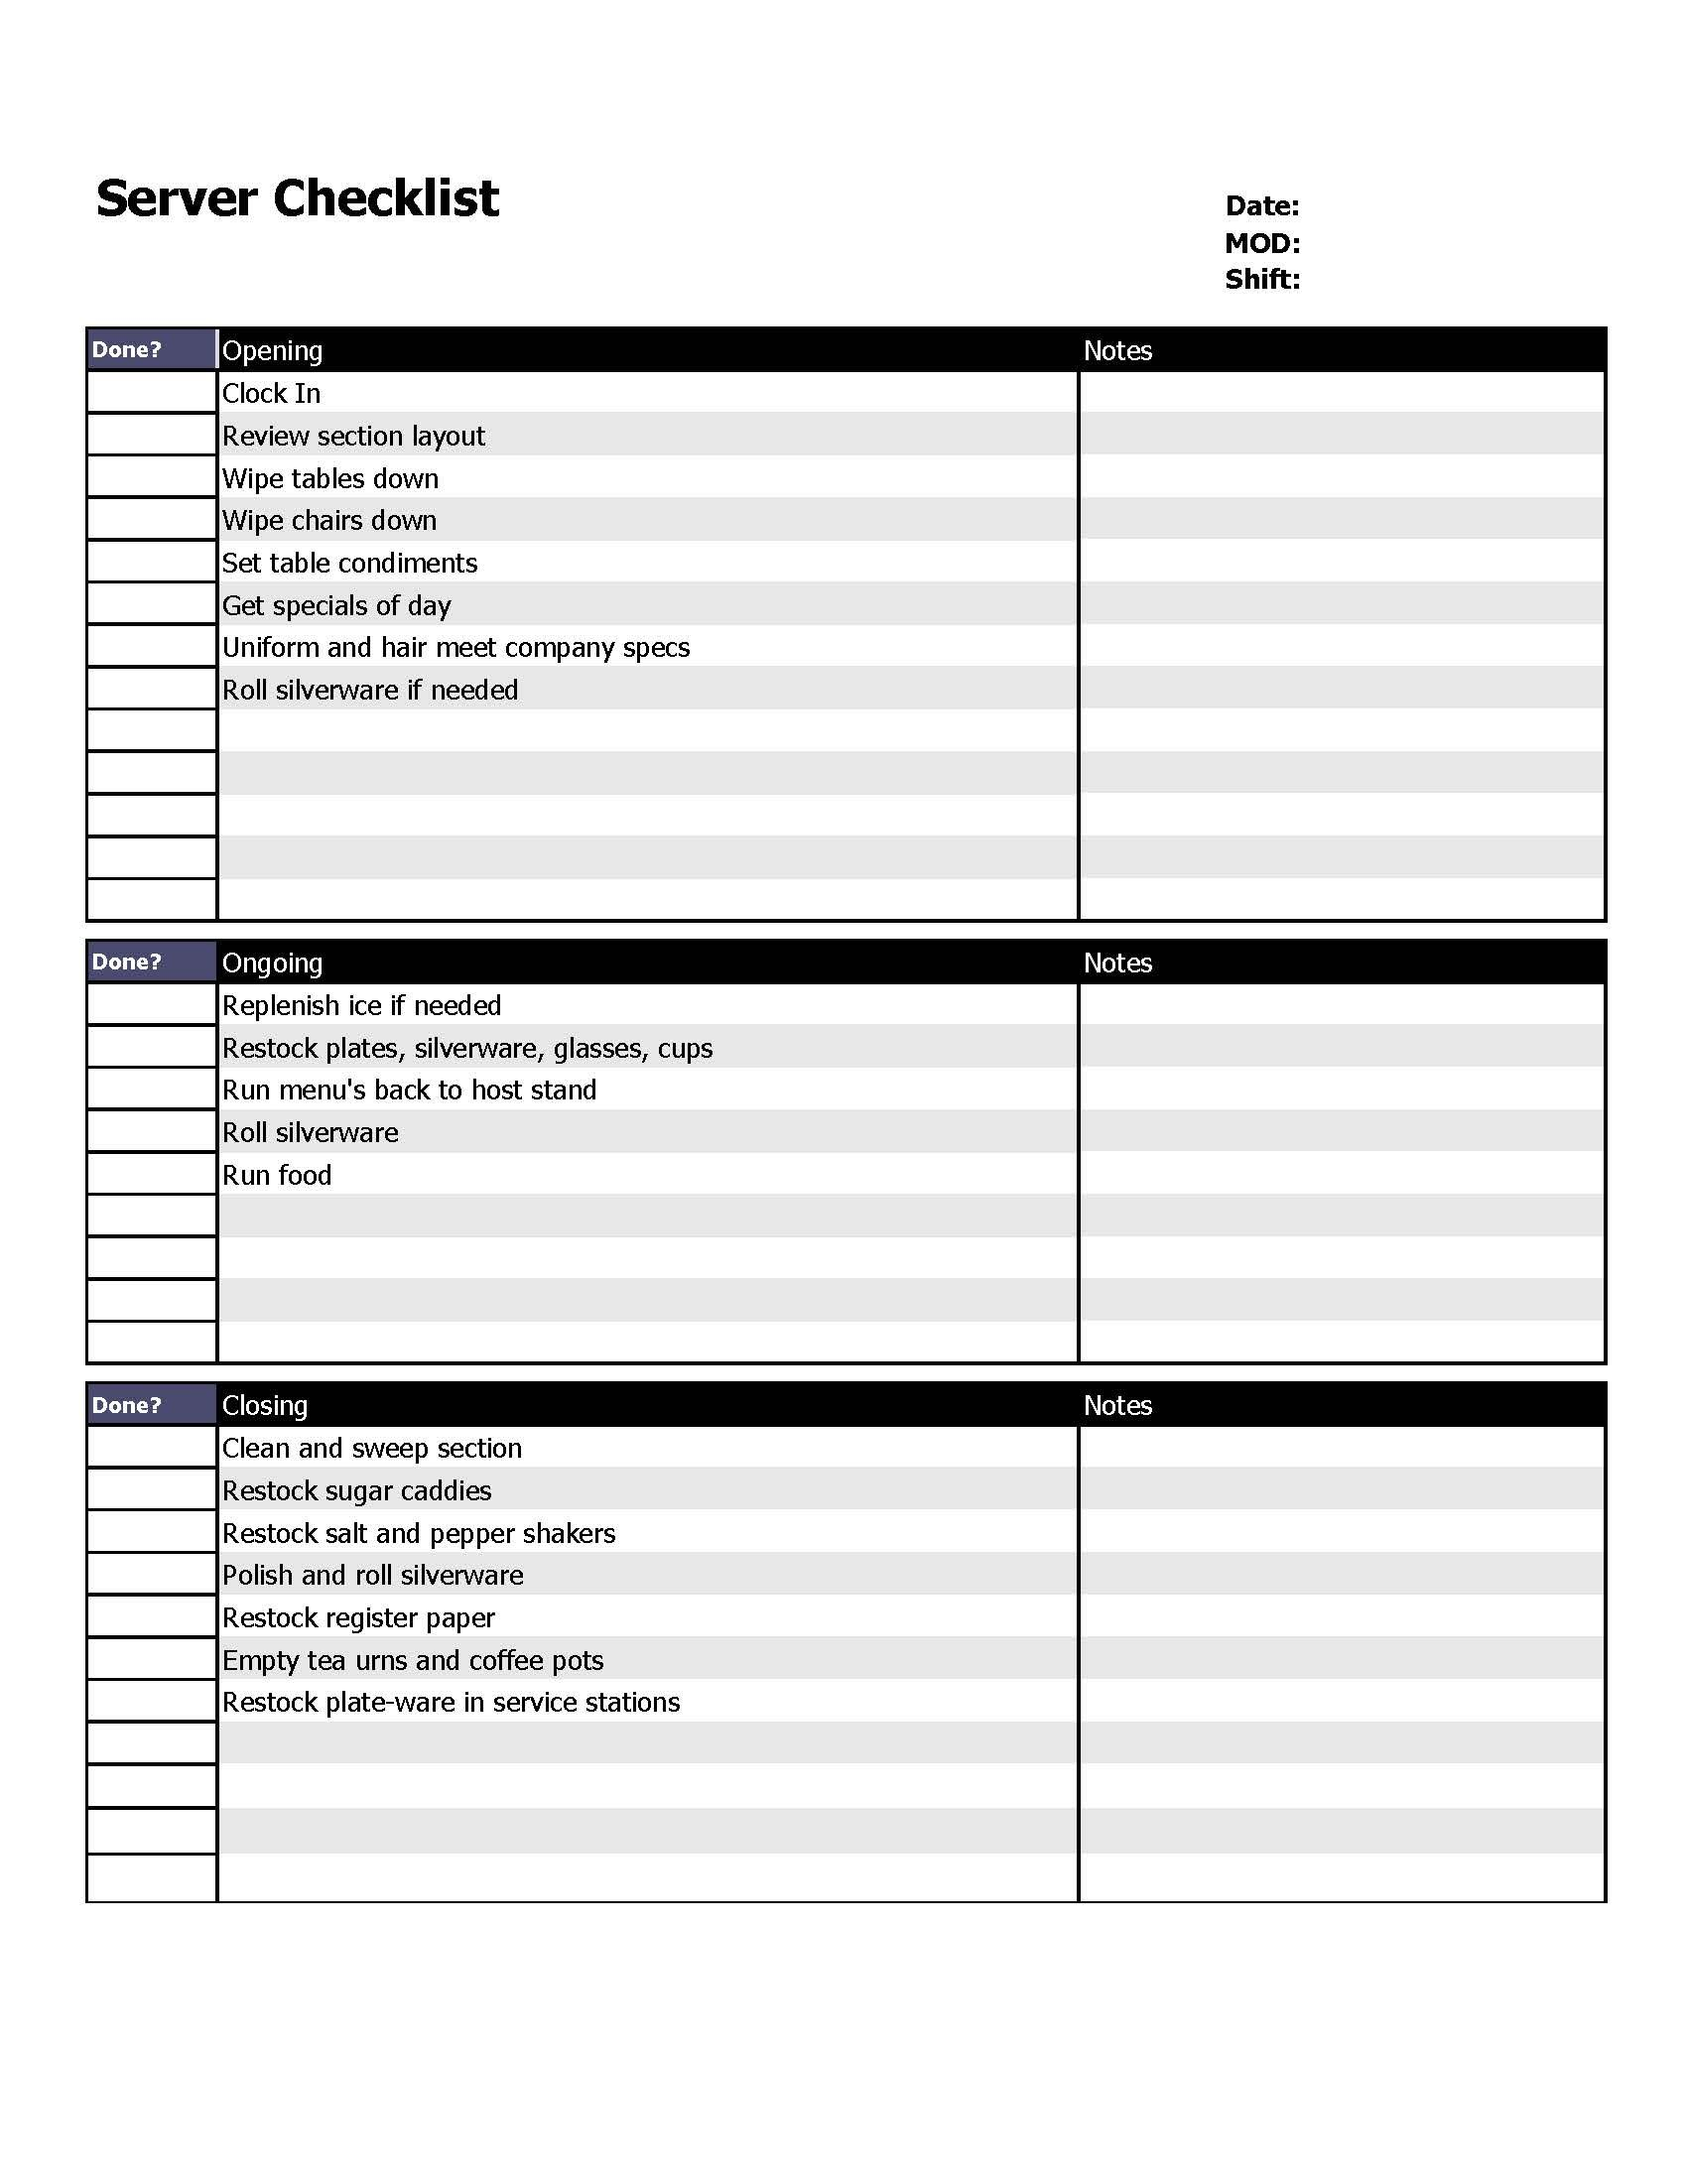 Restaurant server checklist form. | Organizing | Pinterest | Theken ...